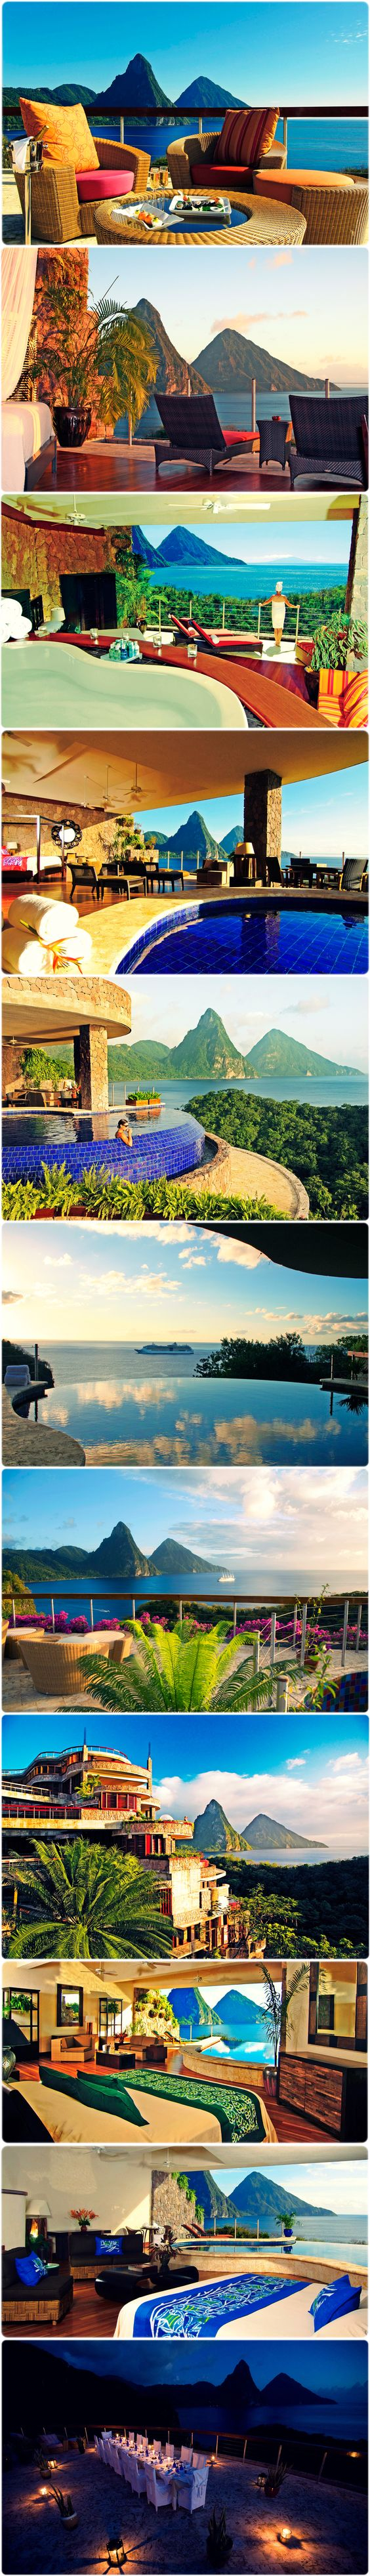 """Jade Mountain Resort Hotel, Soufriere! >>> http://www.otel.com/hotels/jade_mountain_resort_hotel_soufriere.htm?sm=pinterest  Use the code """"UPYRPW15"""" while making your reservation on otel.com, get 10% #discount"""